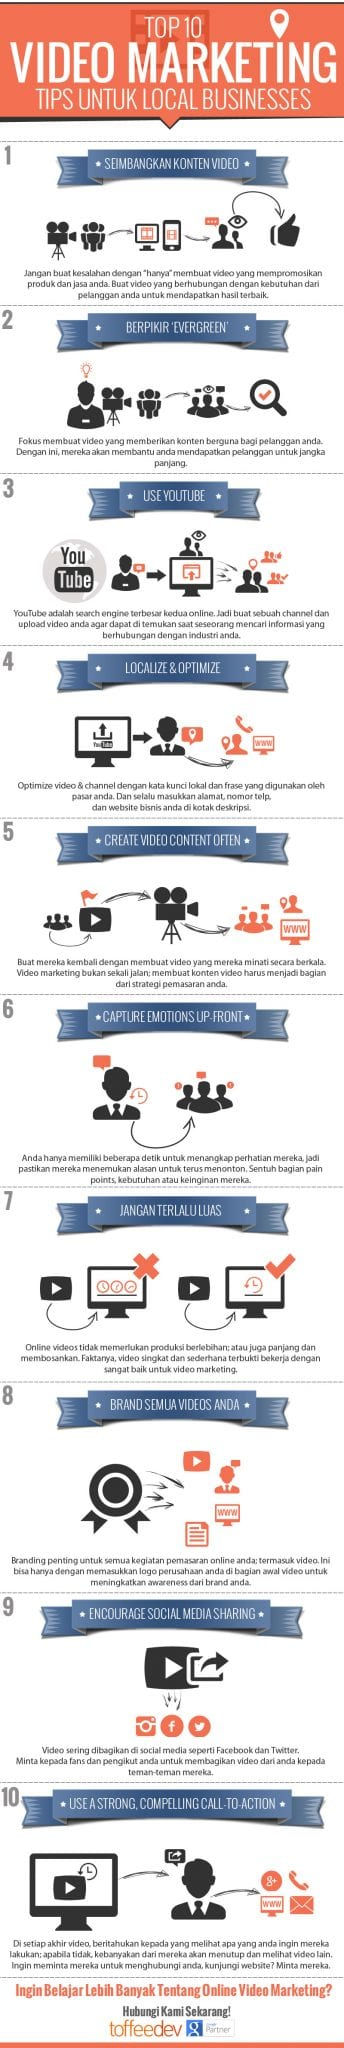 top 10 Video Marketing